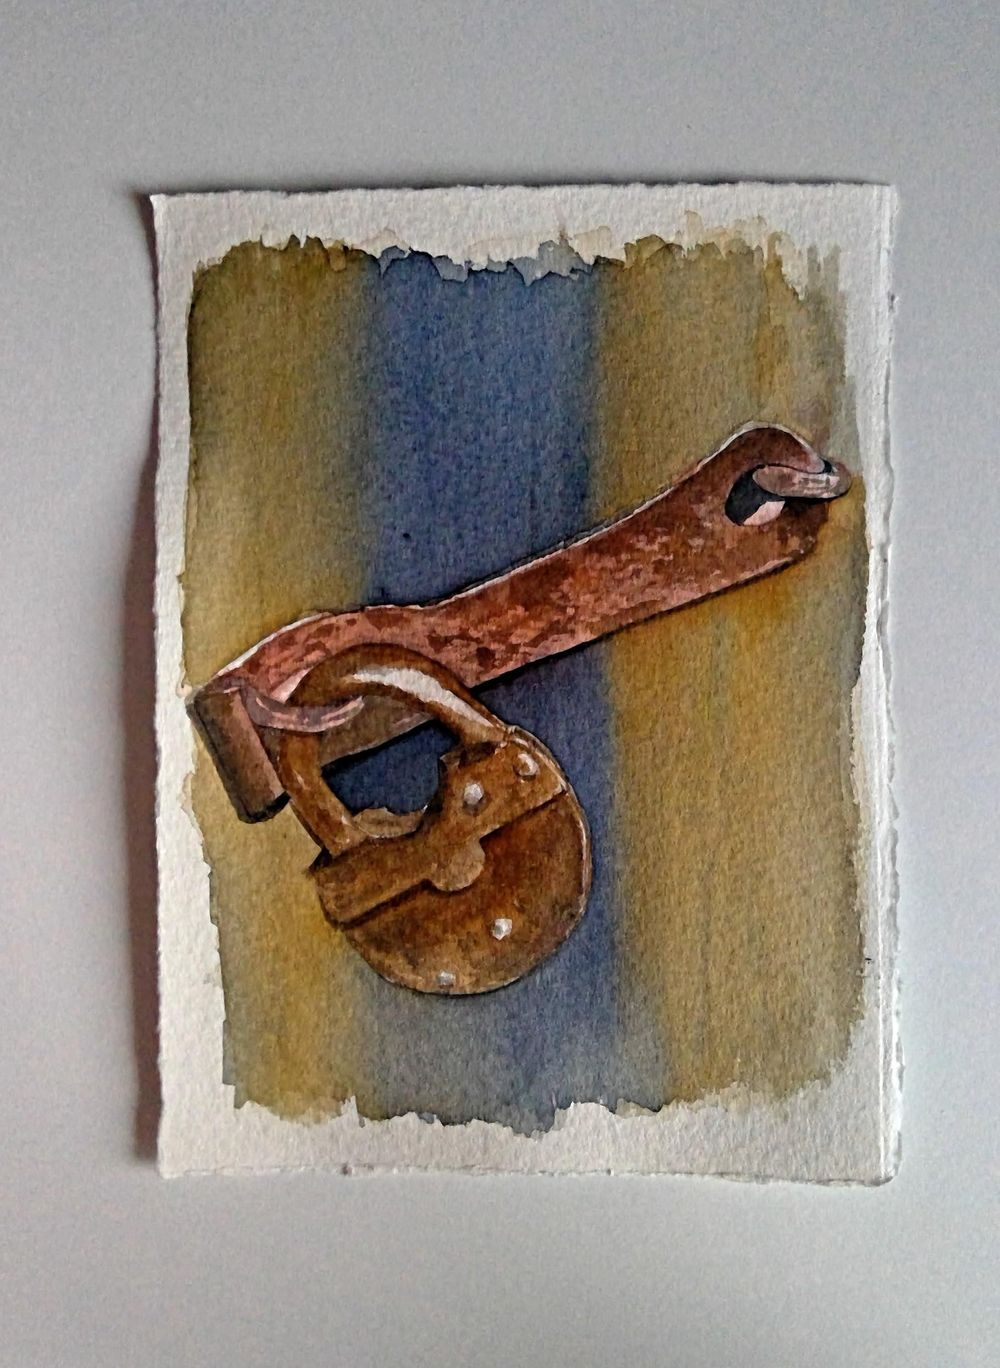 Lock from Pinterest image reference - image 1 - student project